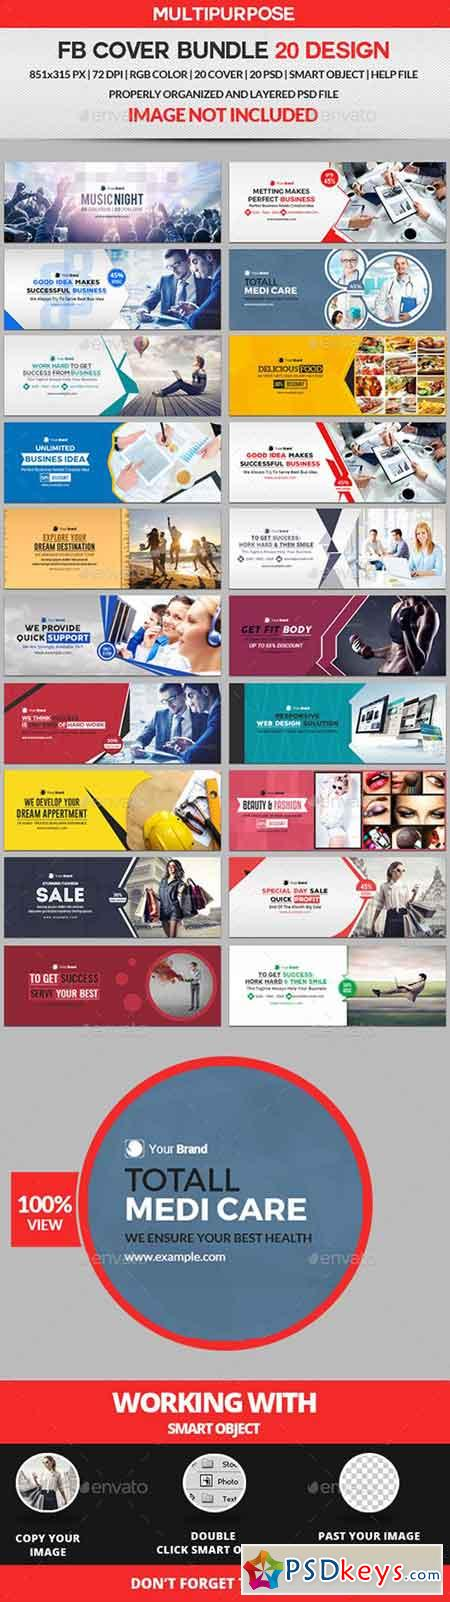 Facebook Cover Bundle Two - 20 Design 19459700